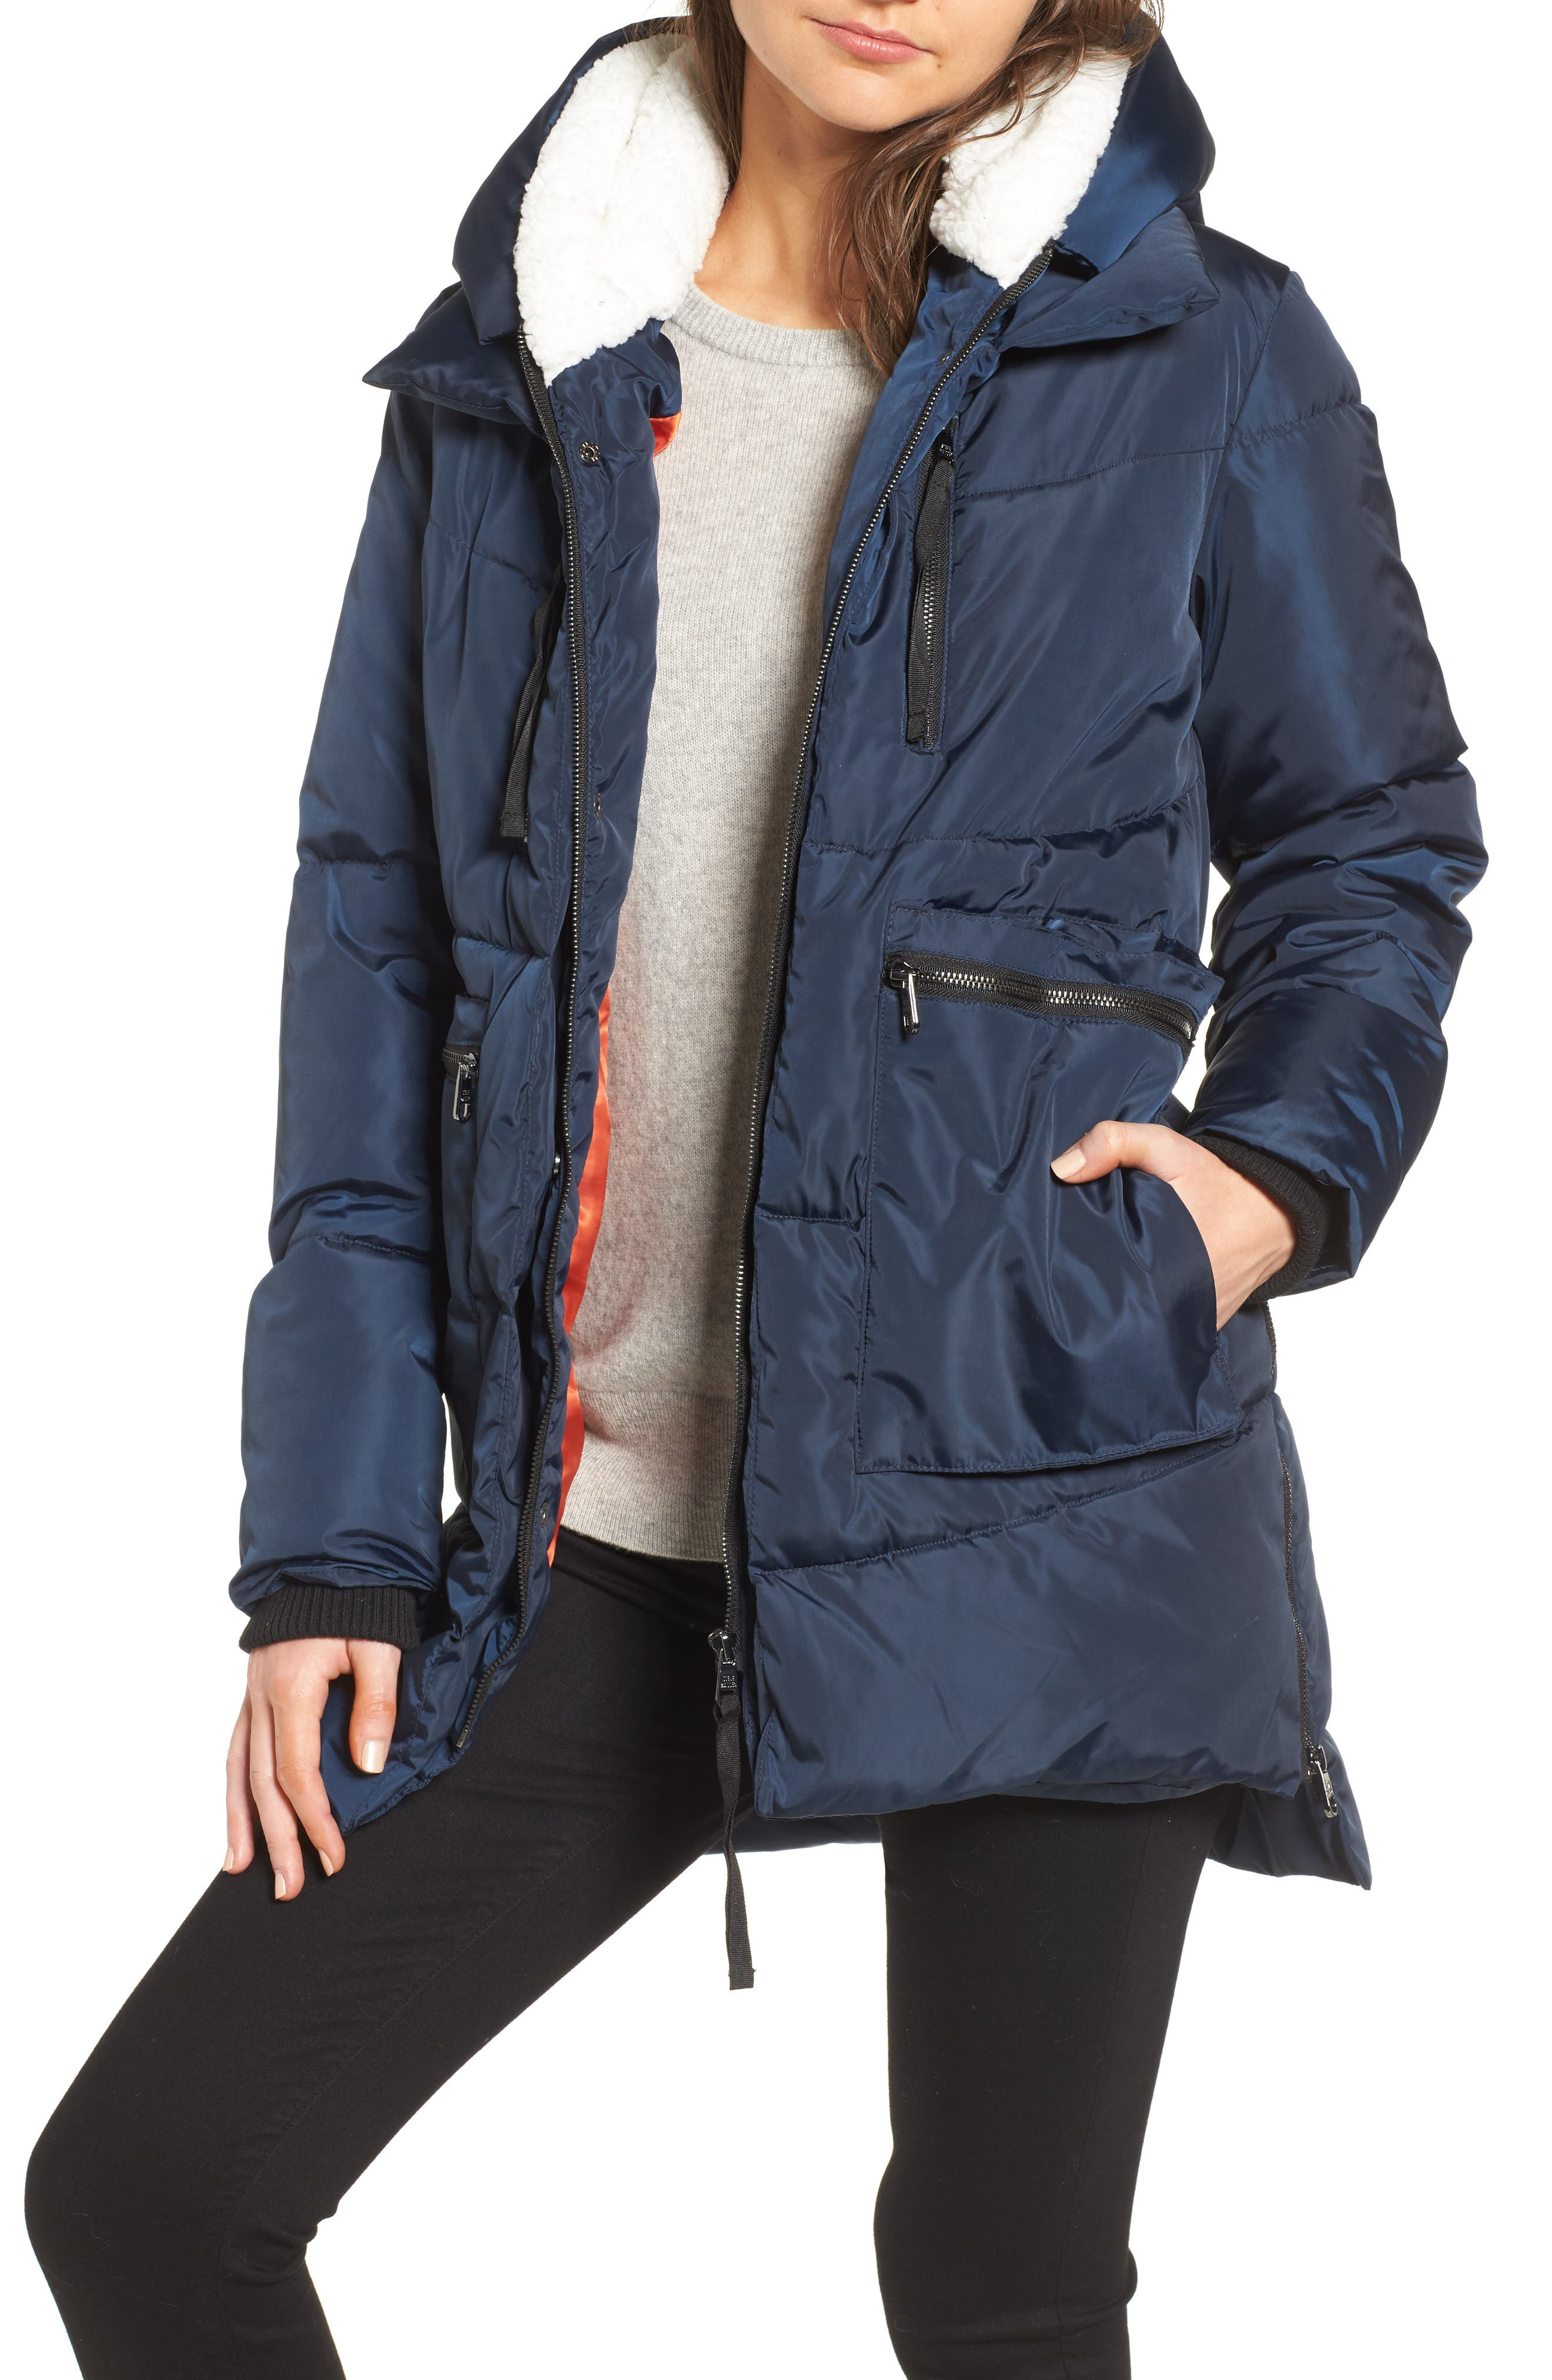 Main Image - Steve Madden Hooded Puffer Jacket with Faux Shearling Trim